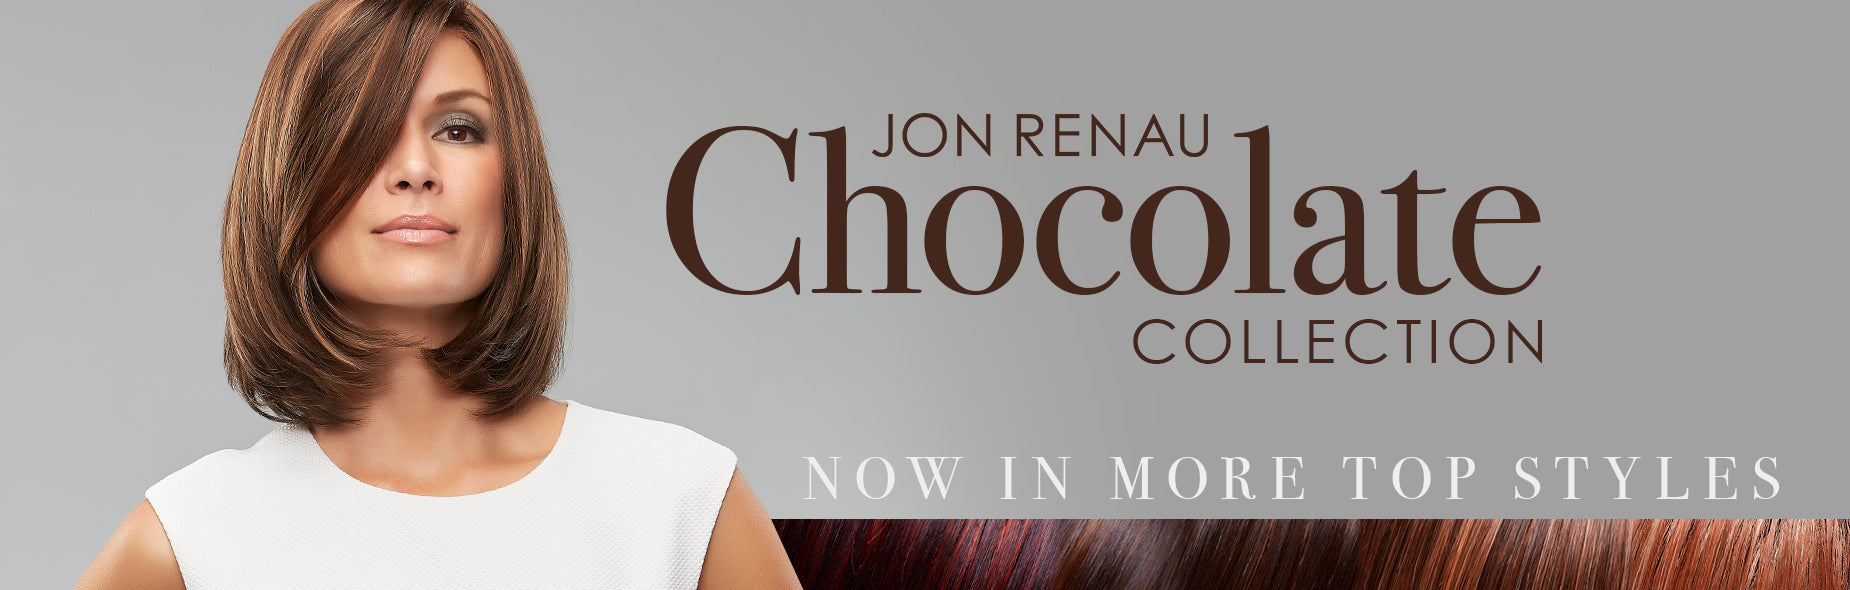 NEW Jon Renau Chocolate Colors: Salted Caramel, Toffee Truffle, Midnight Cocoa & Chocolate Cherry